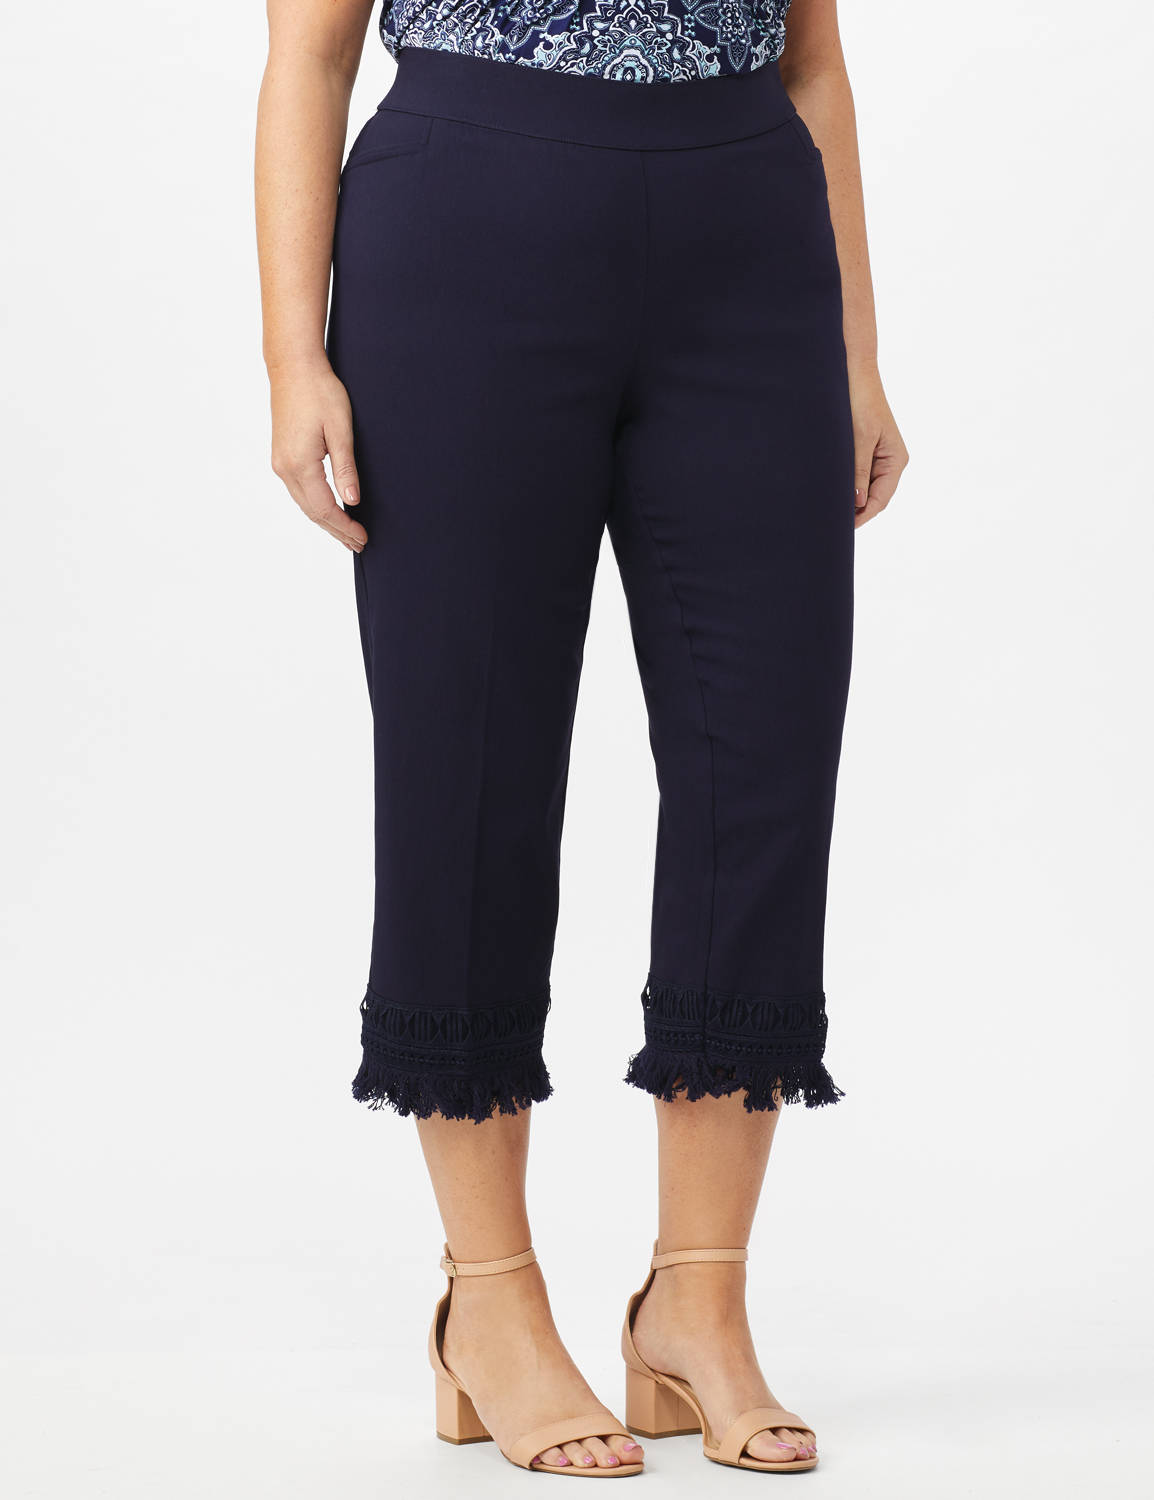 Pull On Crop Pants with Fringe Hem Detail -Navy - Front